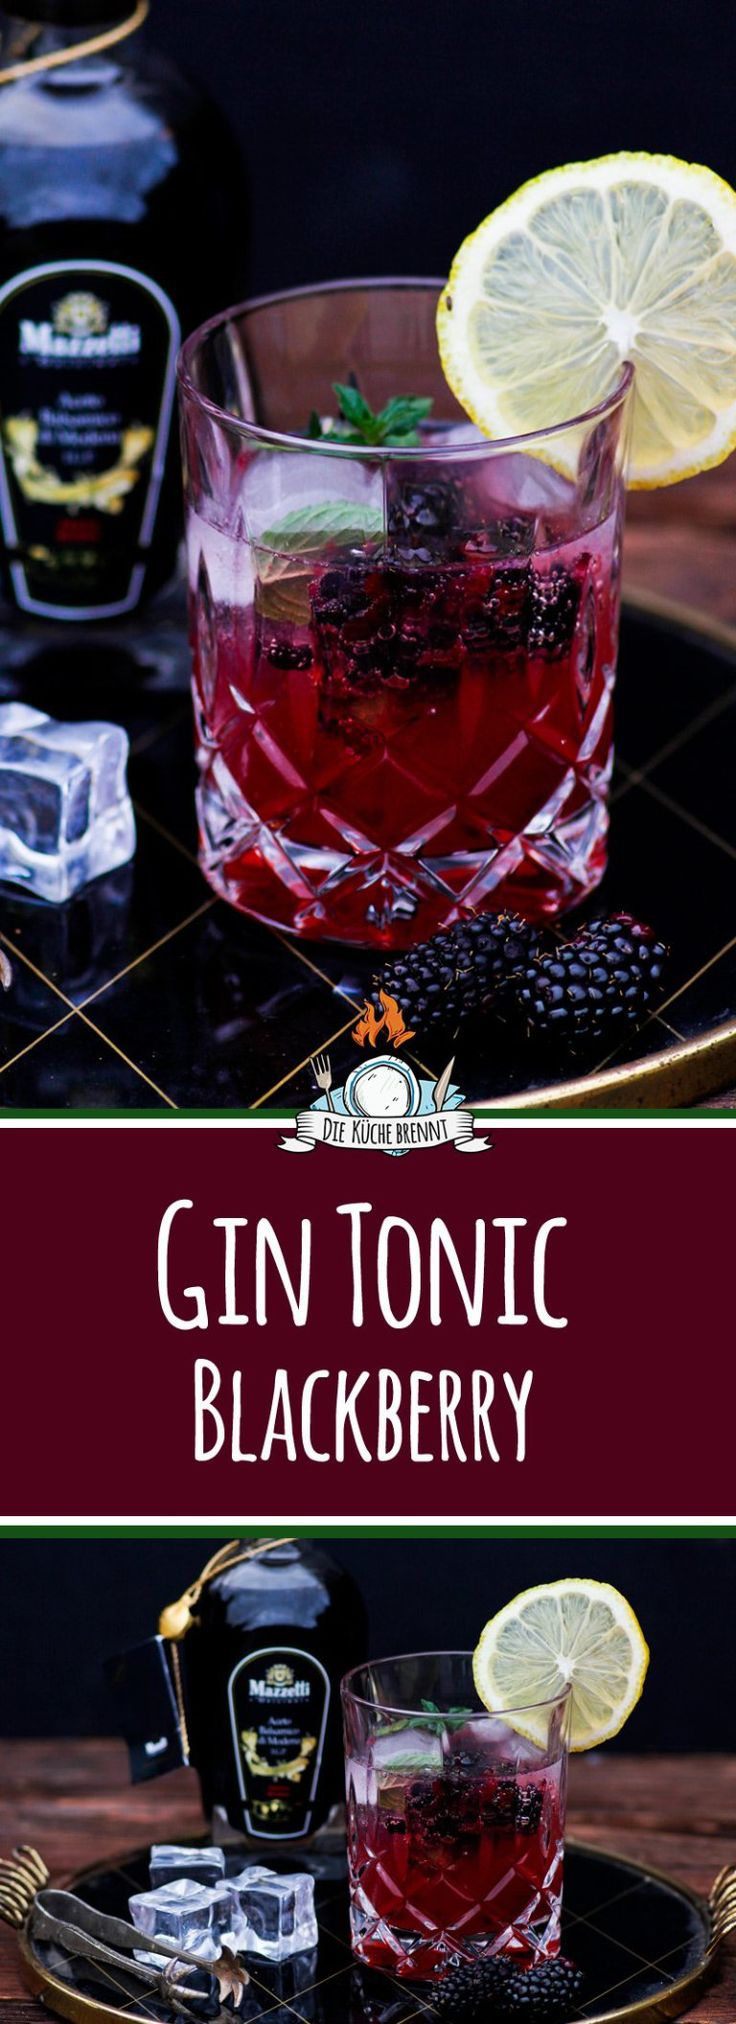 In Drink 2017 - Gin Tonic Blackberry Lemon with Mazzetti l'originale. www.fi ...